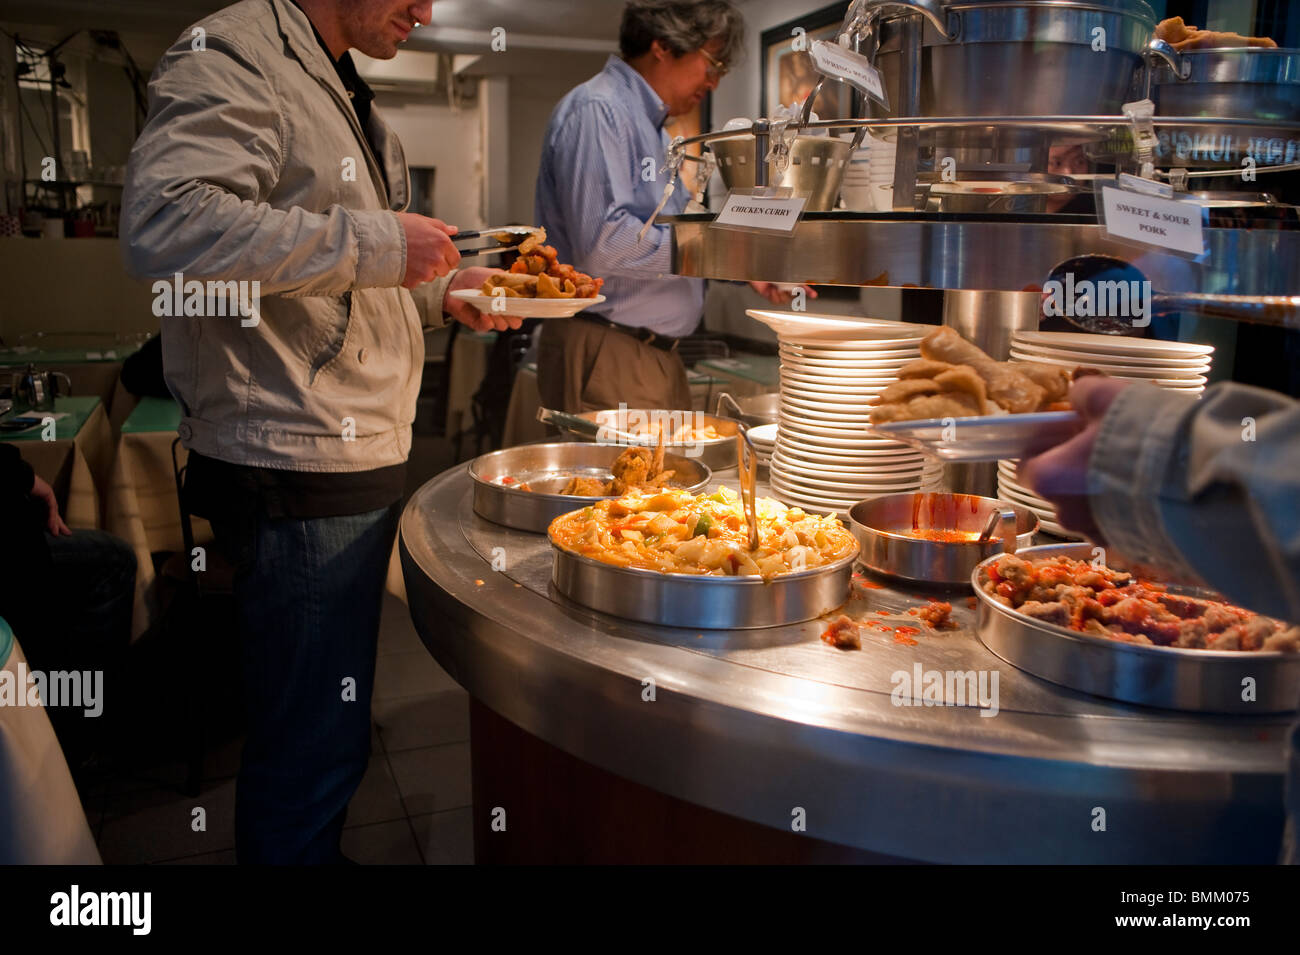 London, UK, Chinatown, Chinese Restaurant, Customers Serving Themselves at Chinese Food Buffet - Stock Image